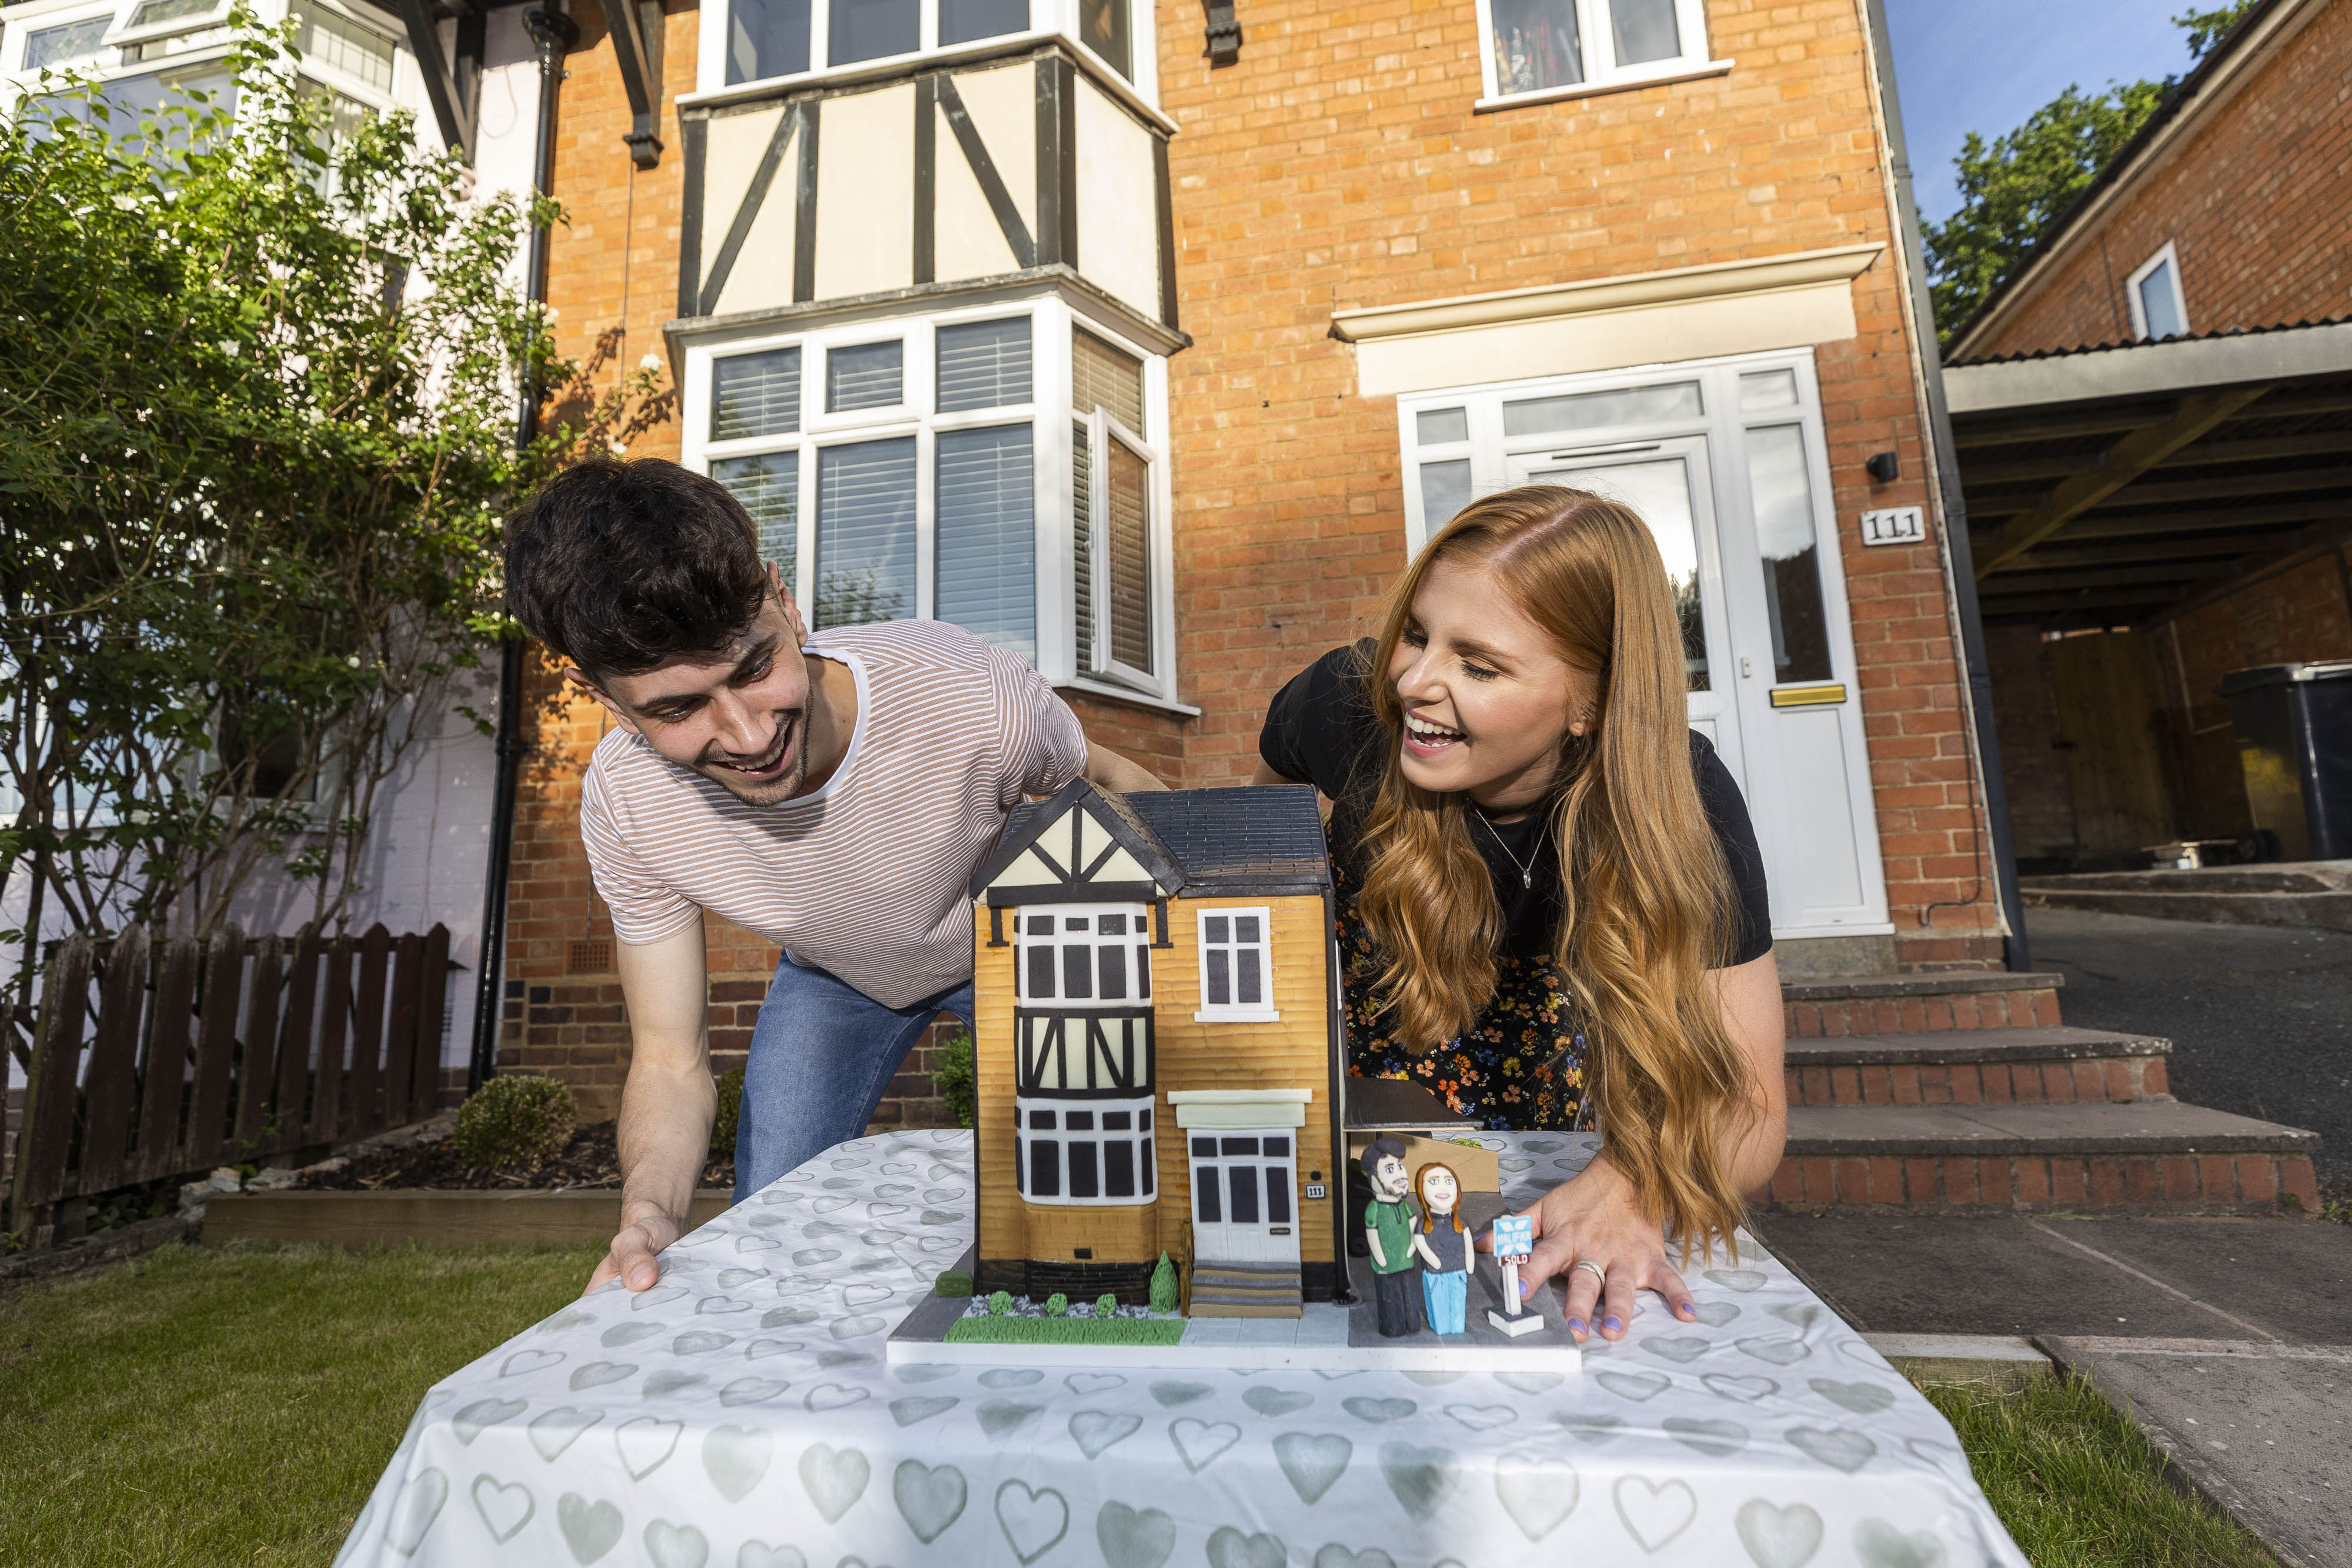 <p>EDITORIAL USE ONLY First-time buyers, George Isaacs and Lauren Turner are presented with a �First-Home� celebration cake outside their new home in Redditch, which has been created by Ben Cullen, The Bake King, to help new homeowners mark their home-buying milestone, as research from Halifax finds that a fifth of Brits would spend less on a wedding since the pandemic and more would prioritise buying a first home. Despite couples seeing a house purchase as a bigger relationship commitment than a wedding, just two-fifths of young people would consider celebrating the achievement with loved ones. Issue date: Thursday June 17, 2021.</p>